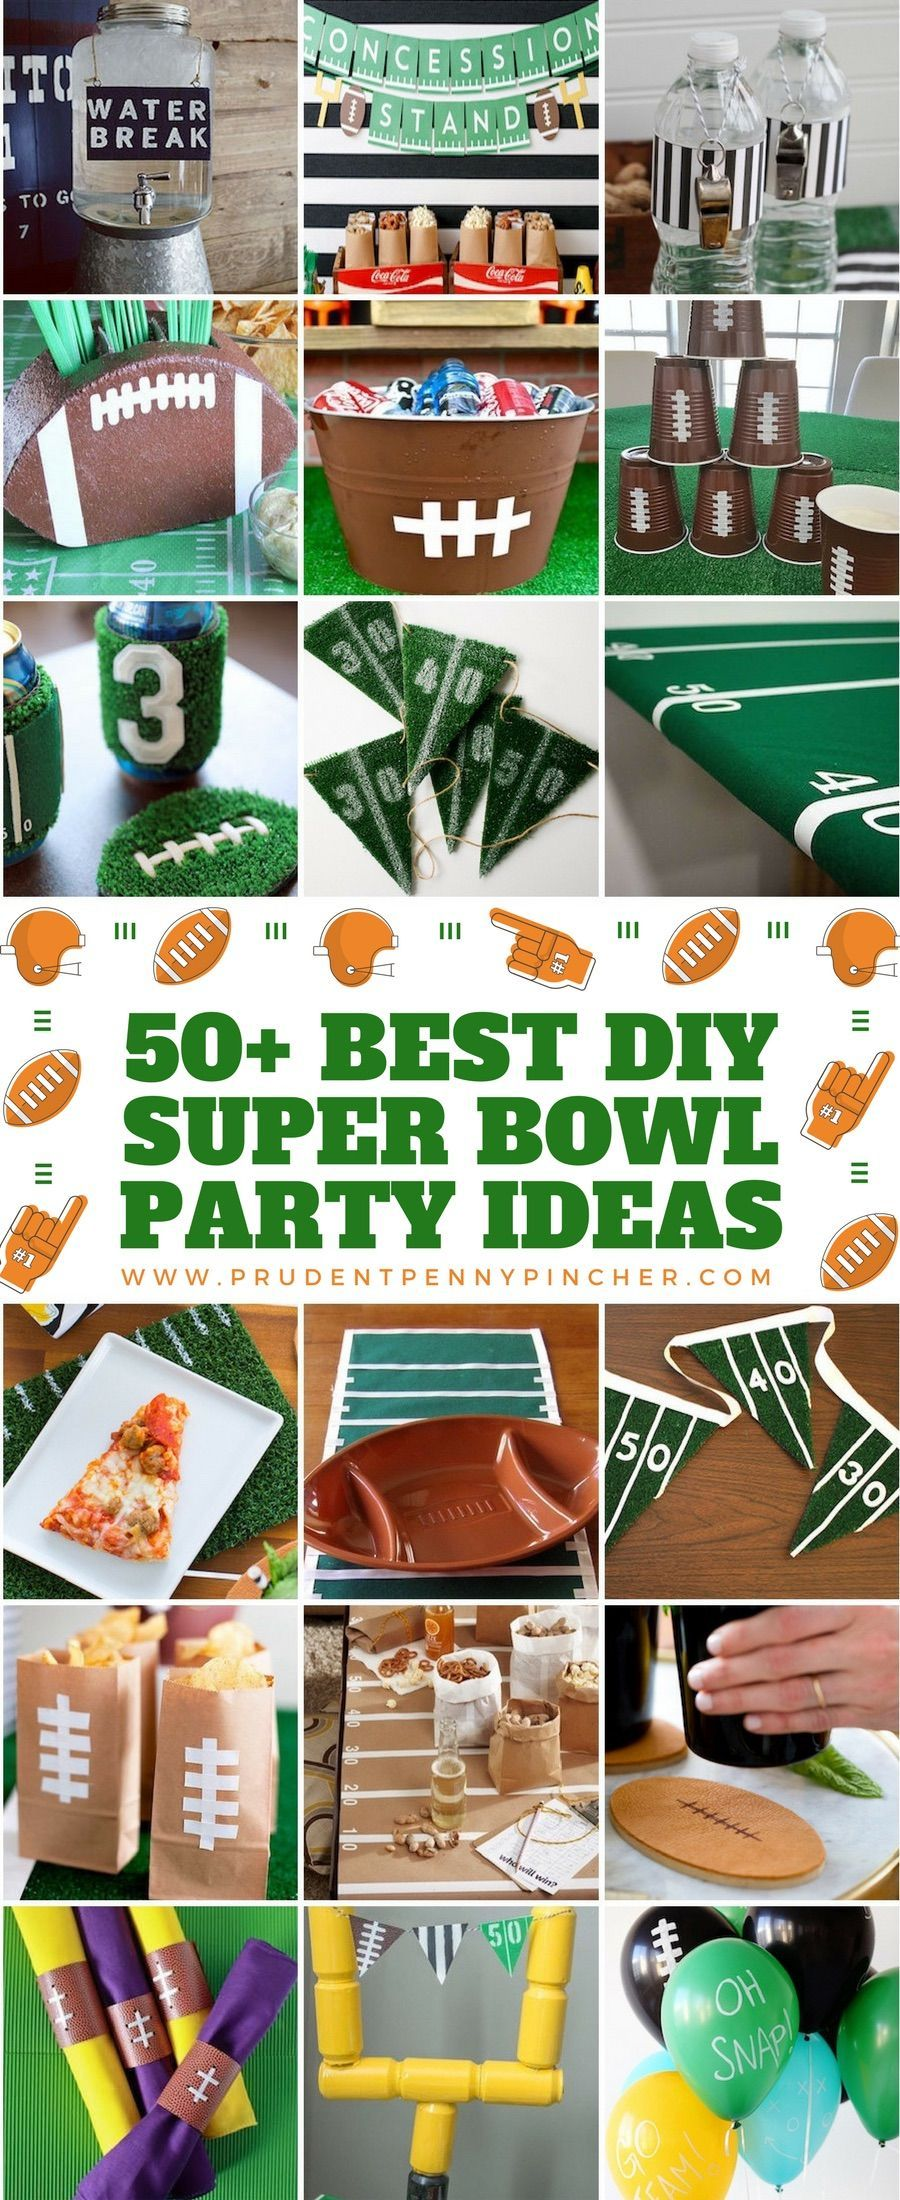 50 Best DIY Super Bowl Party Ideas #SuperBowl #football